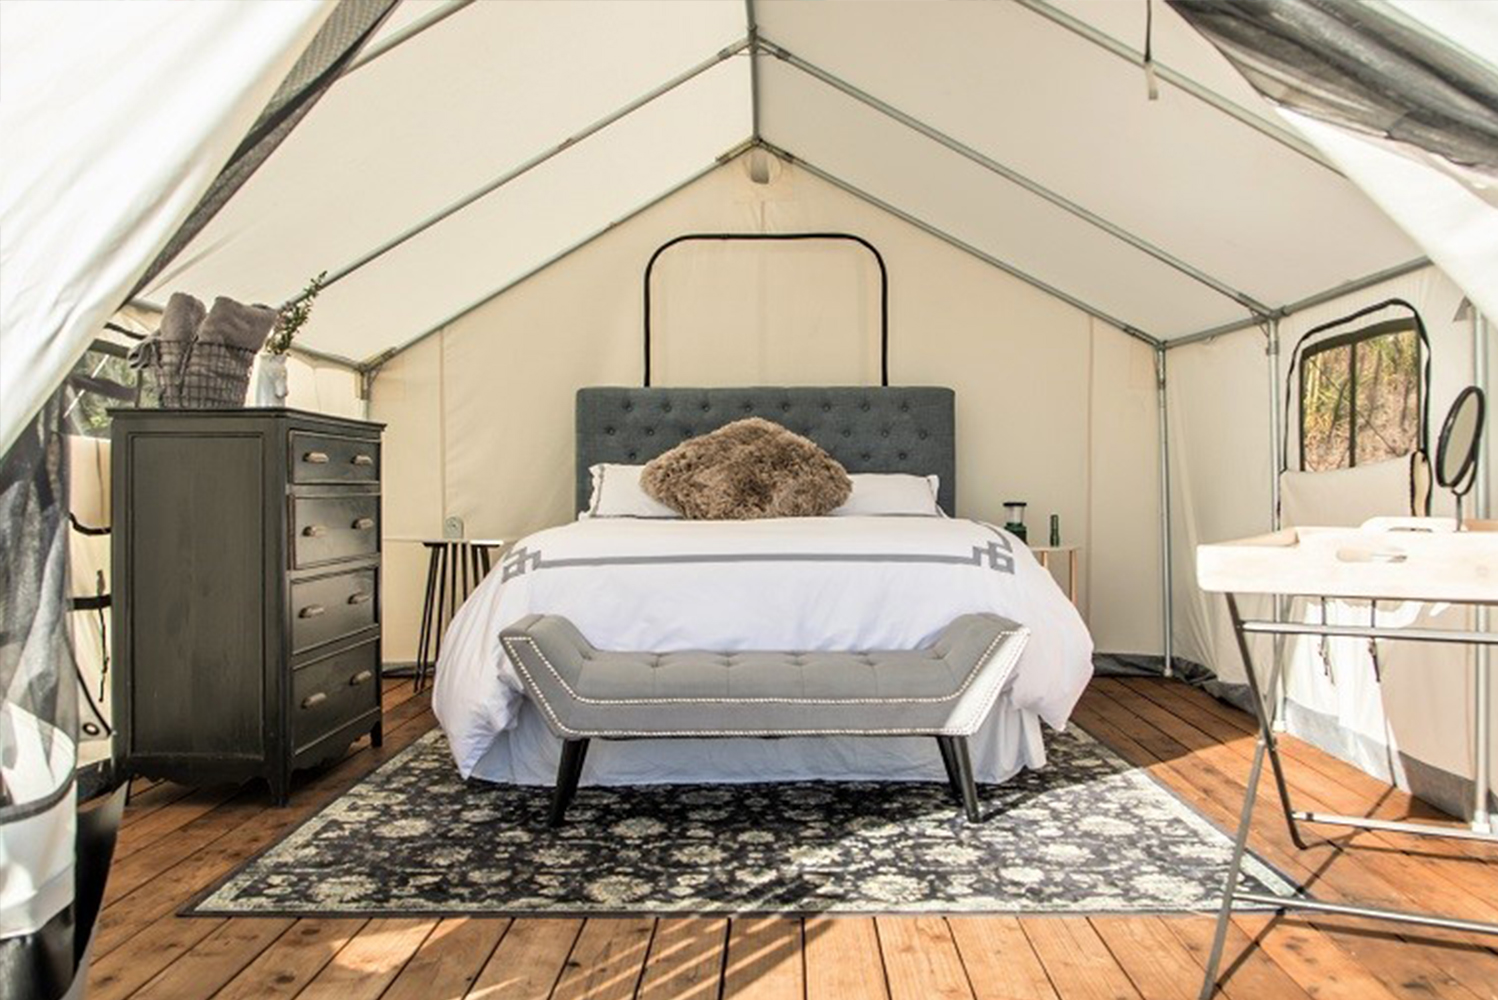 Terra Glamping will launch a new site overlooking Gardiners Bay in East Hampton's Cedar Point County Park at 5 Cedar Point Road, East Hampton, New York.